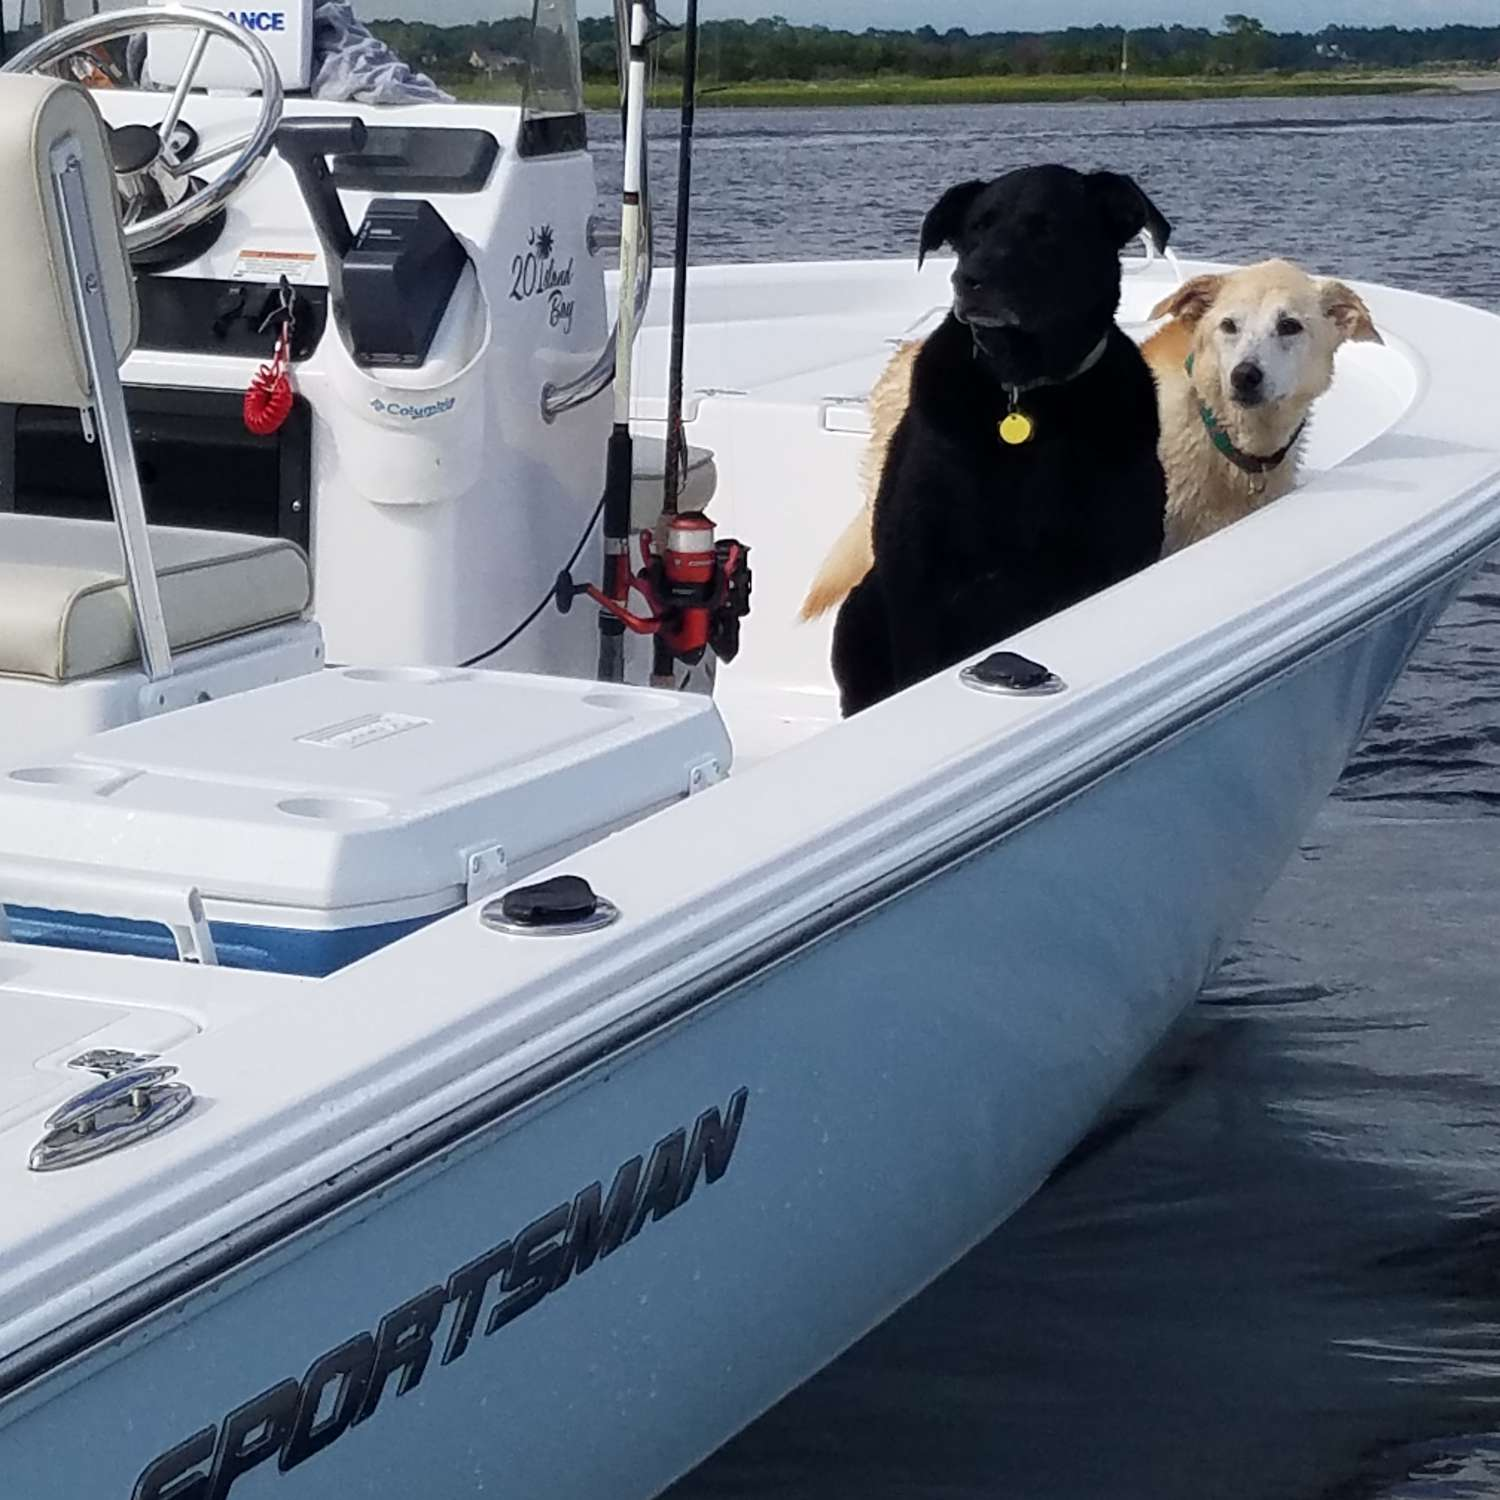 "Title: ""labrador"" Weekend 2016 - On board their Sportsman Island Bay 20 Bay Boat - Location: Surfside Beach, South Carolina. Participating in the Photo Contest #SportsmanSeptember2016"